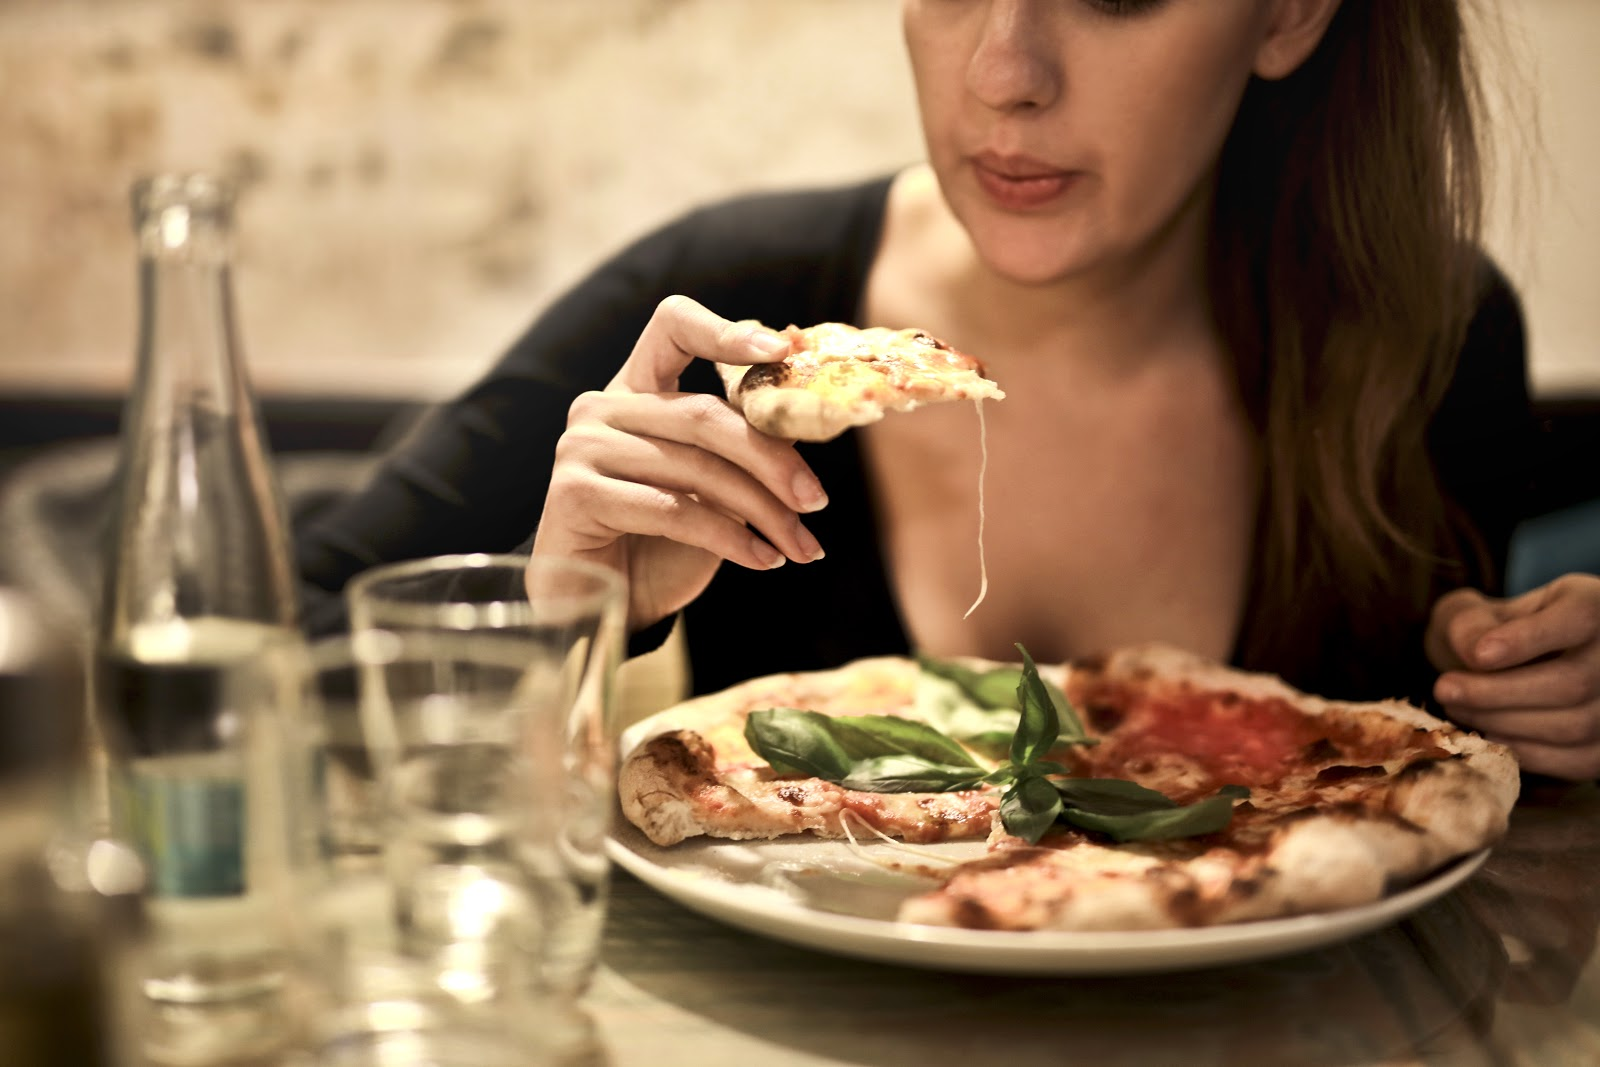 girl eating a pizza slice